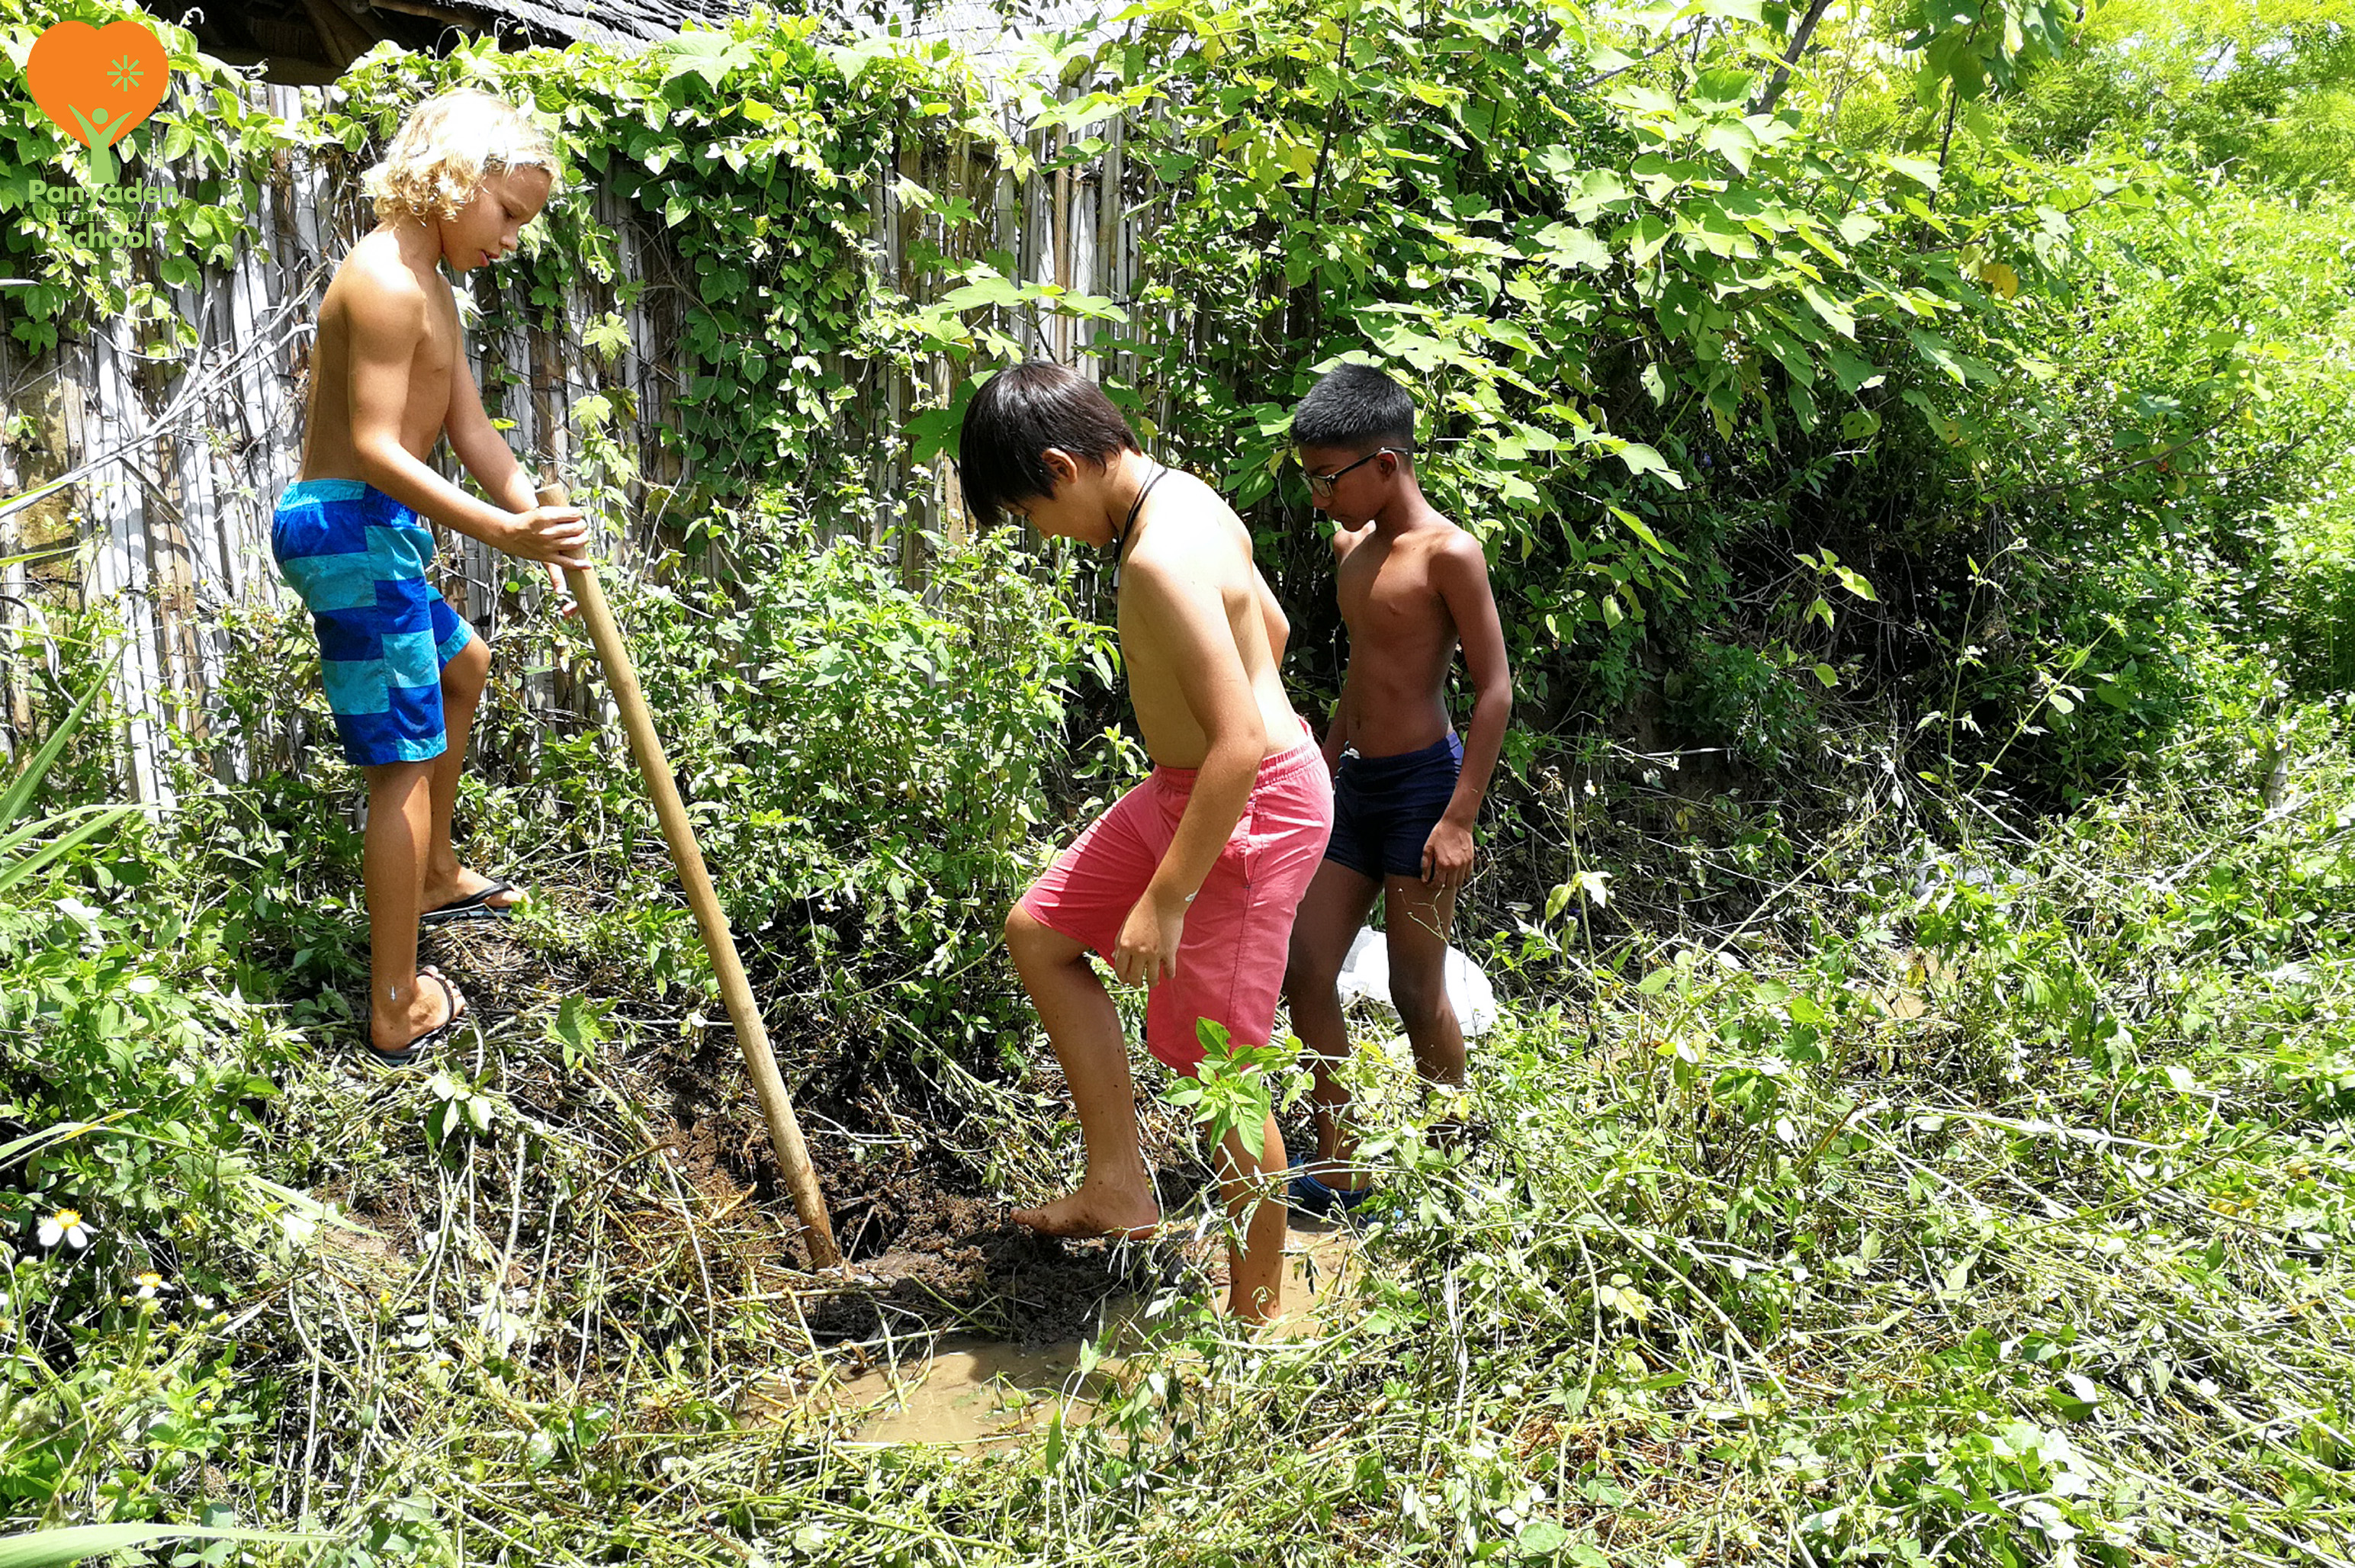 Panyaden Year 6 boys help the school maintenance staff patch holes in the school field after heavy rains 2